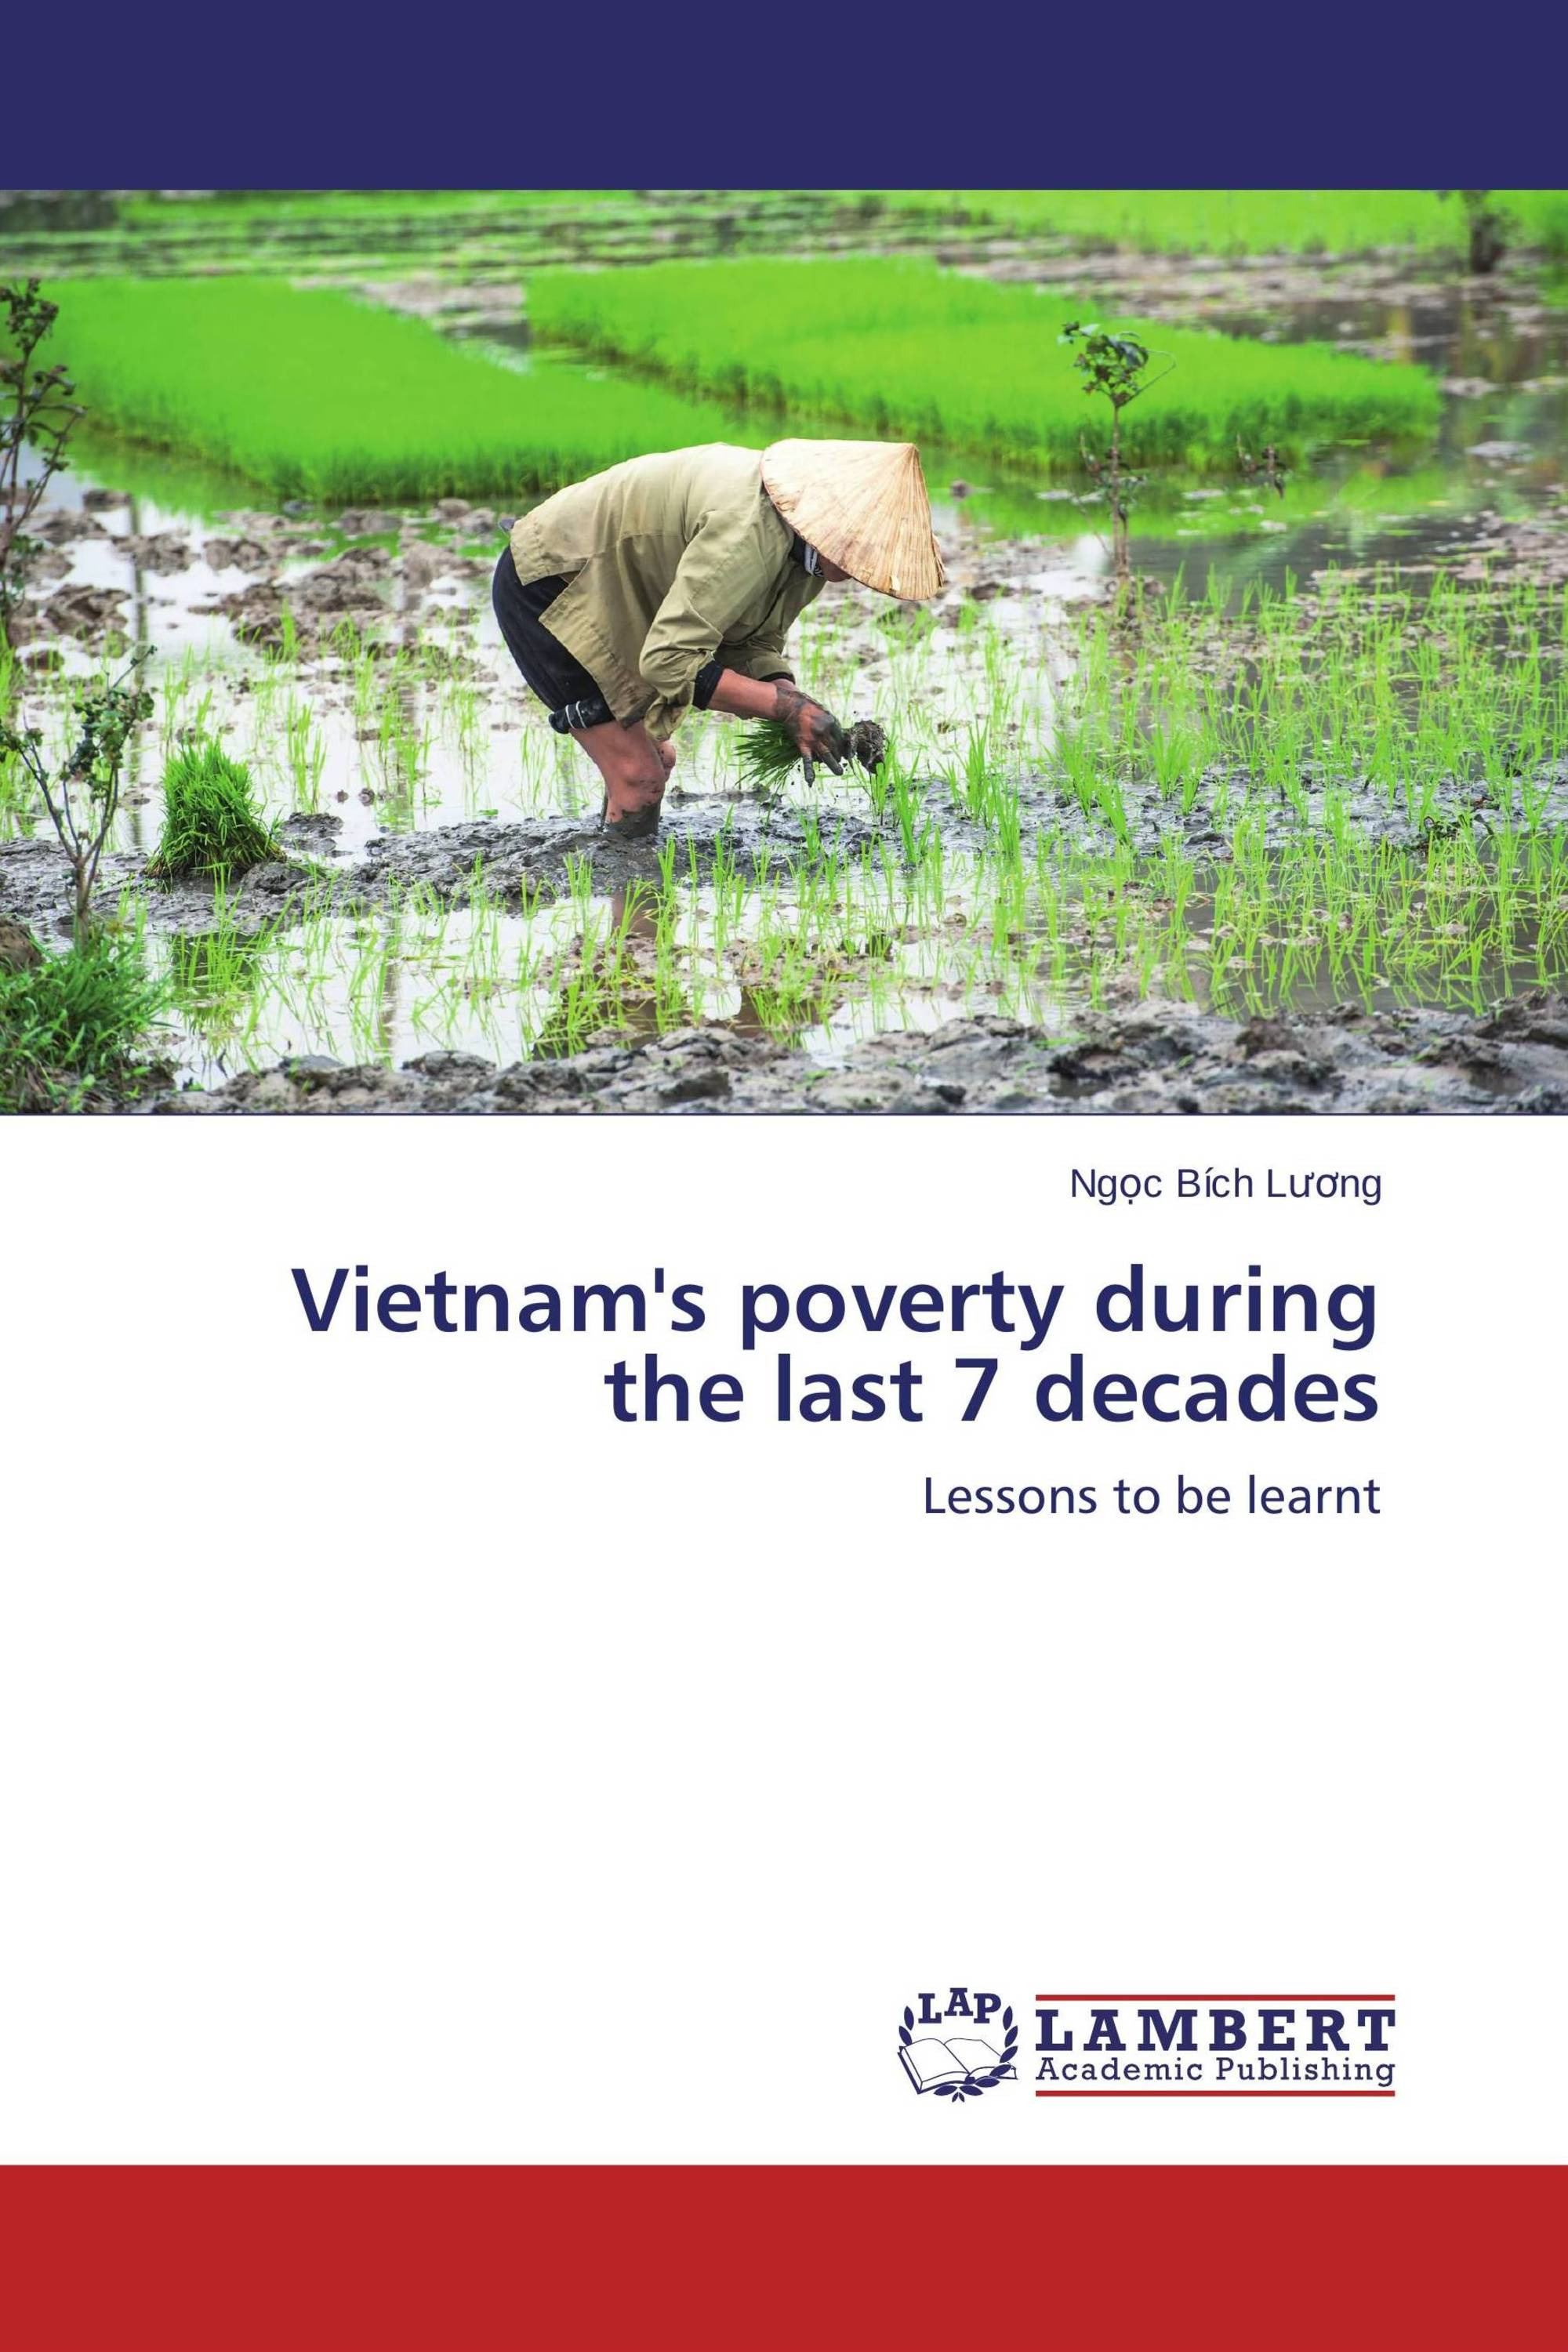 Vietnam's poverty during the last 7 decades